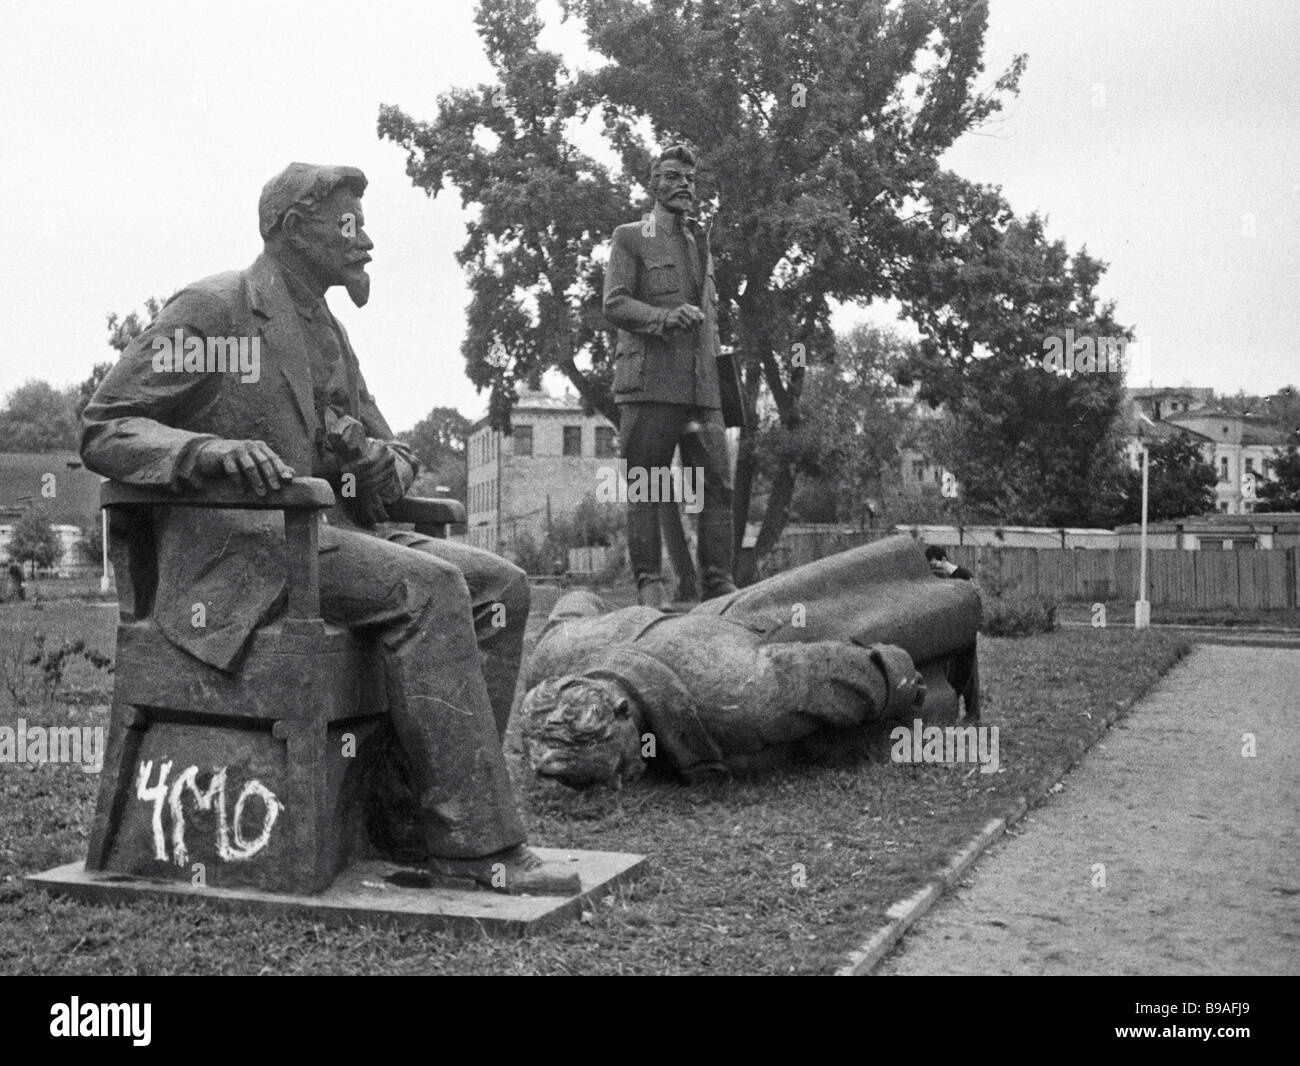 Dismantled monuments to Soviet leaders in the Park of Sculptures - Stock Image